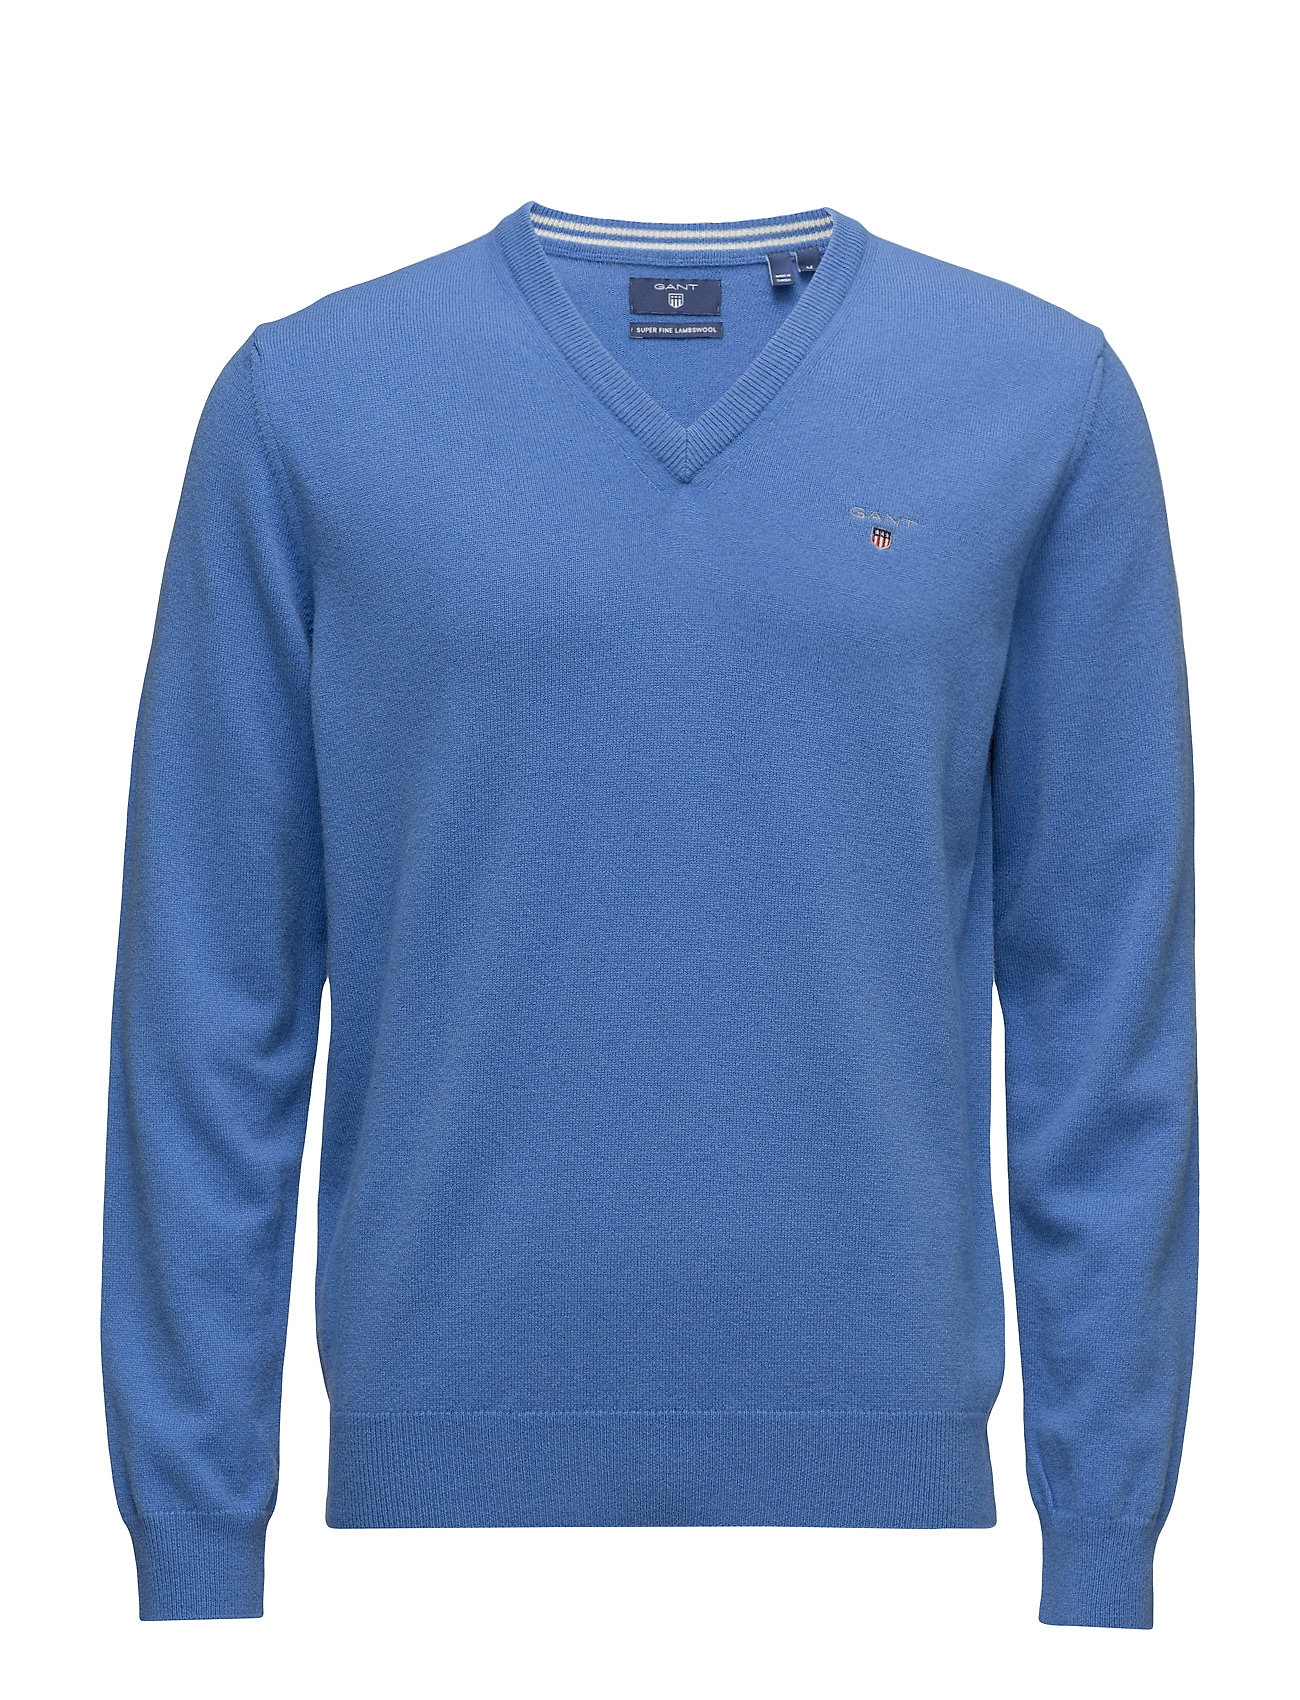 GANT SUPER FINE LAMBSWOOL V-NECK